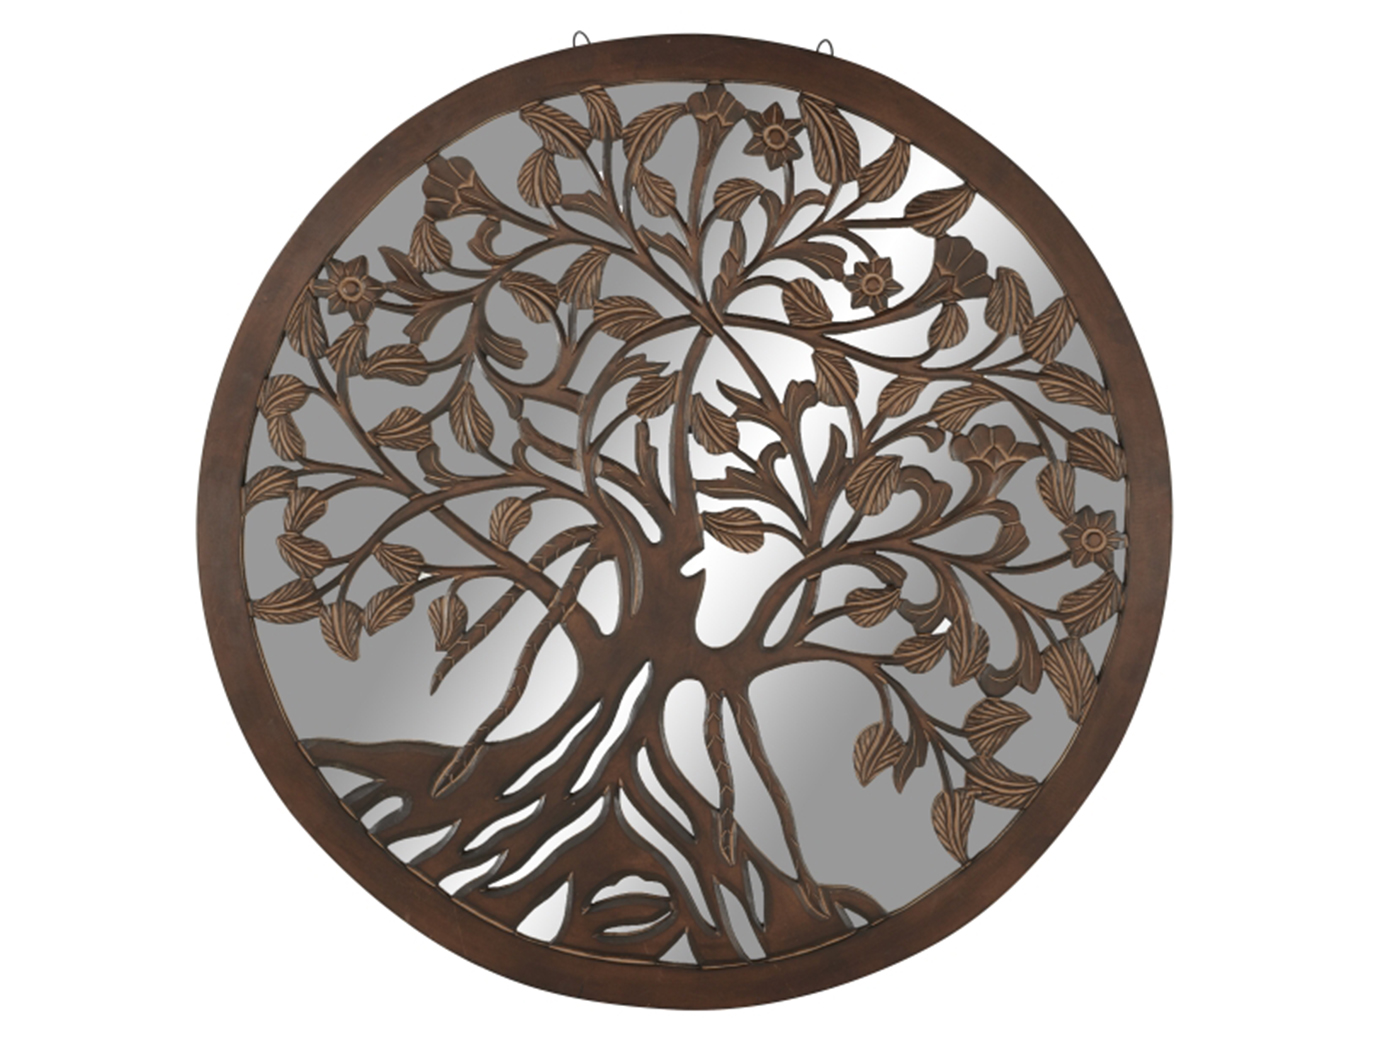 "Wood Tree Decorative Wall Mirror 48"" Round"